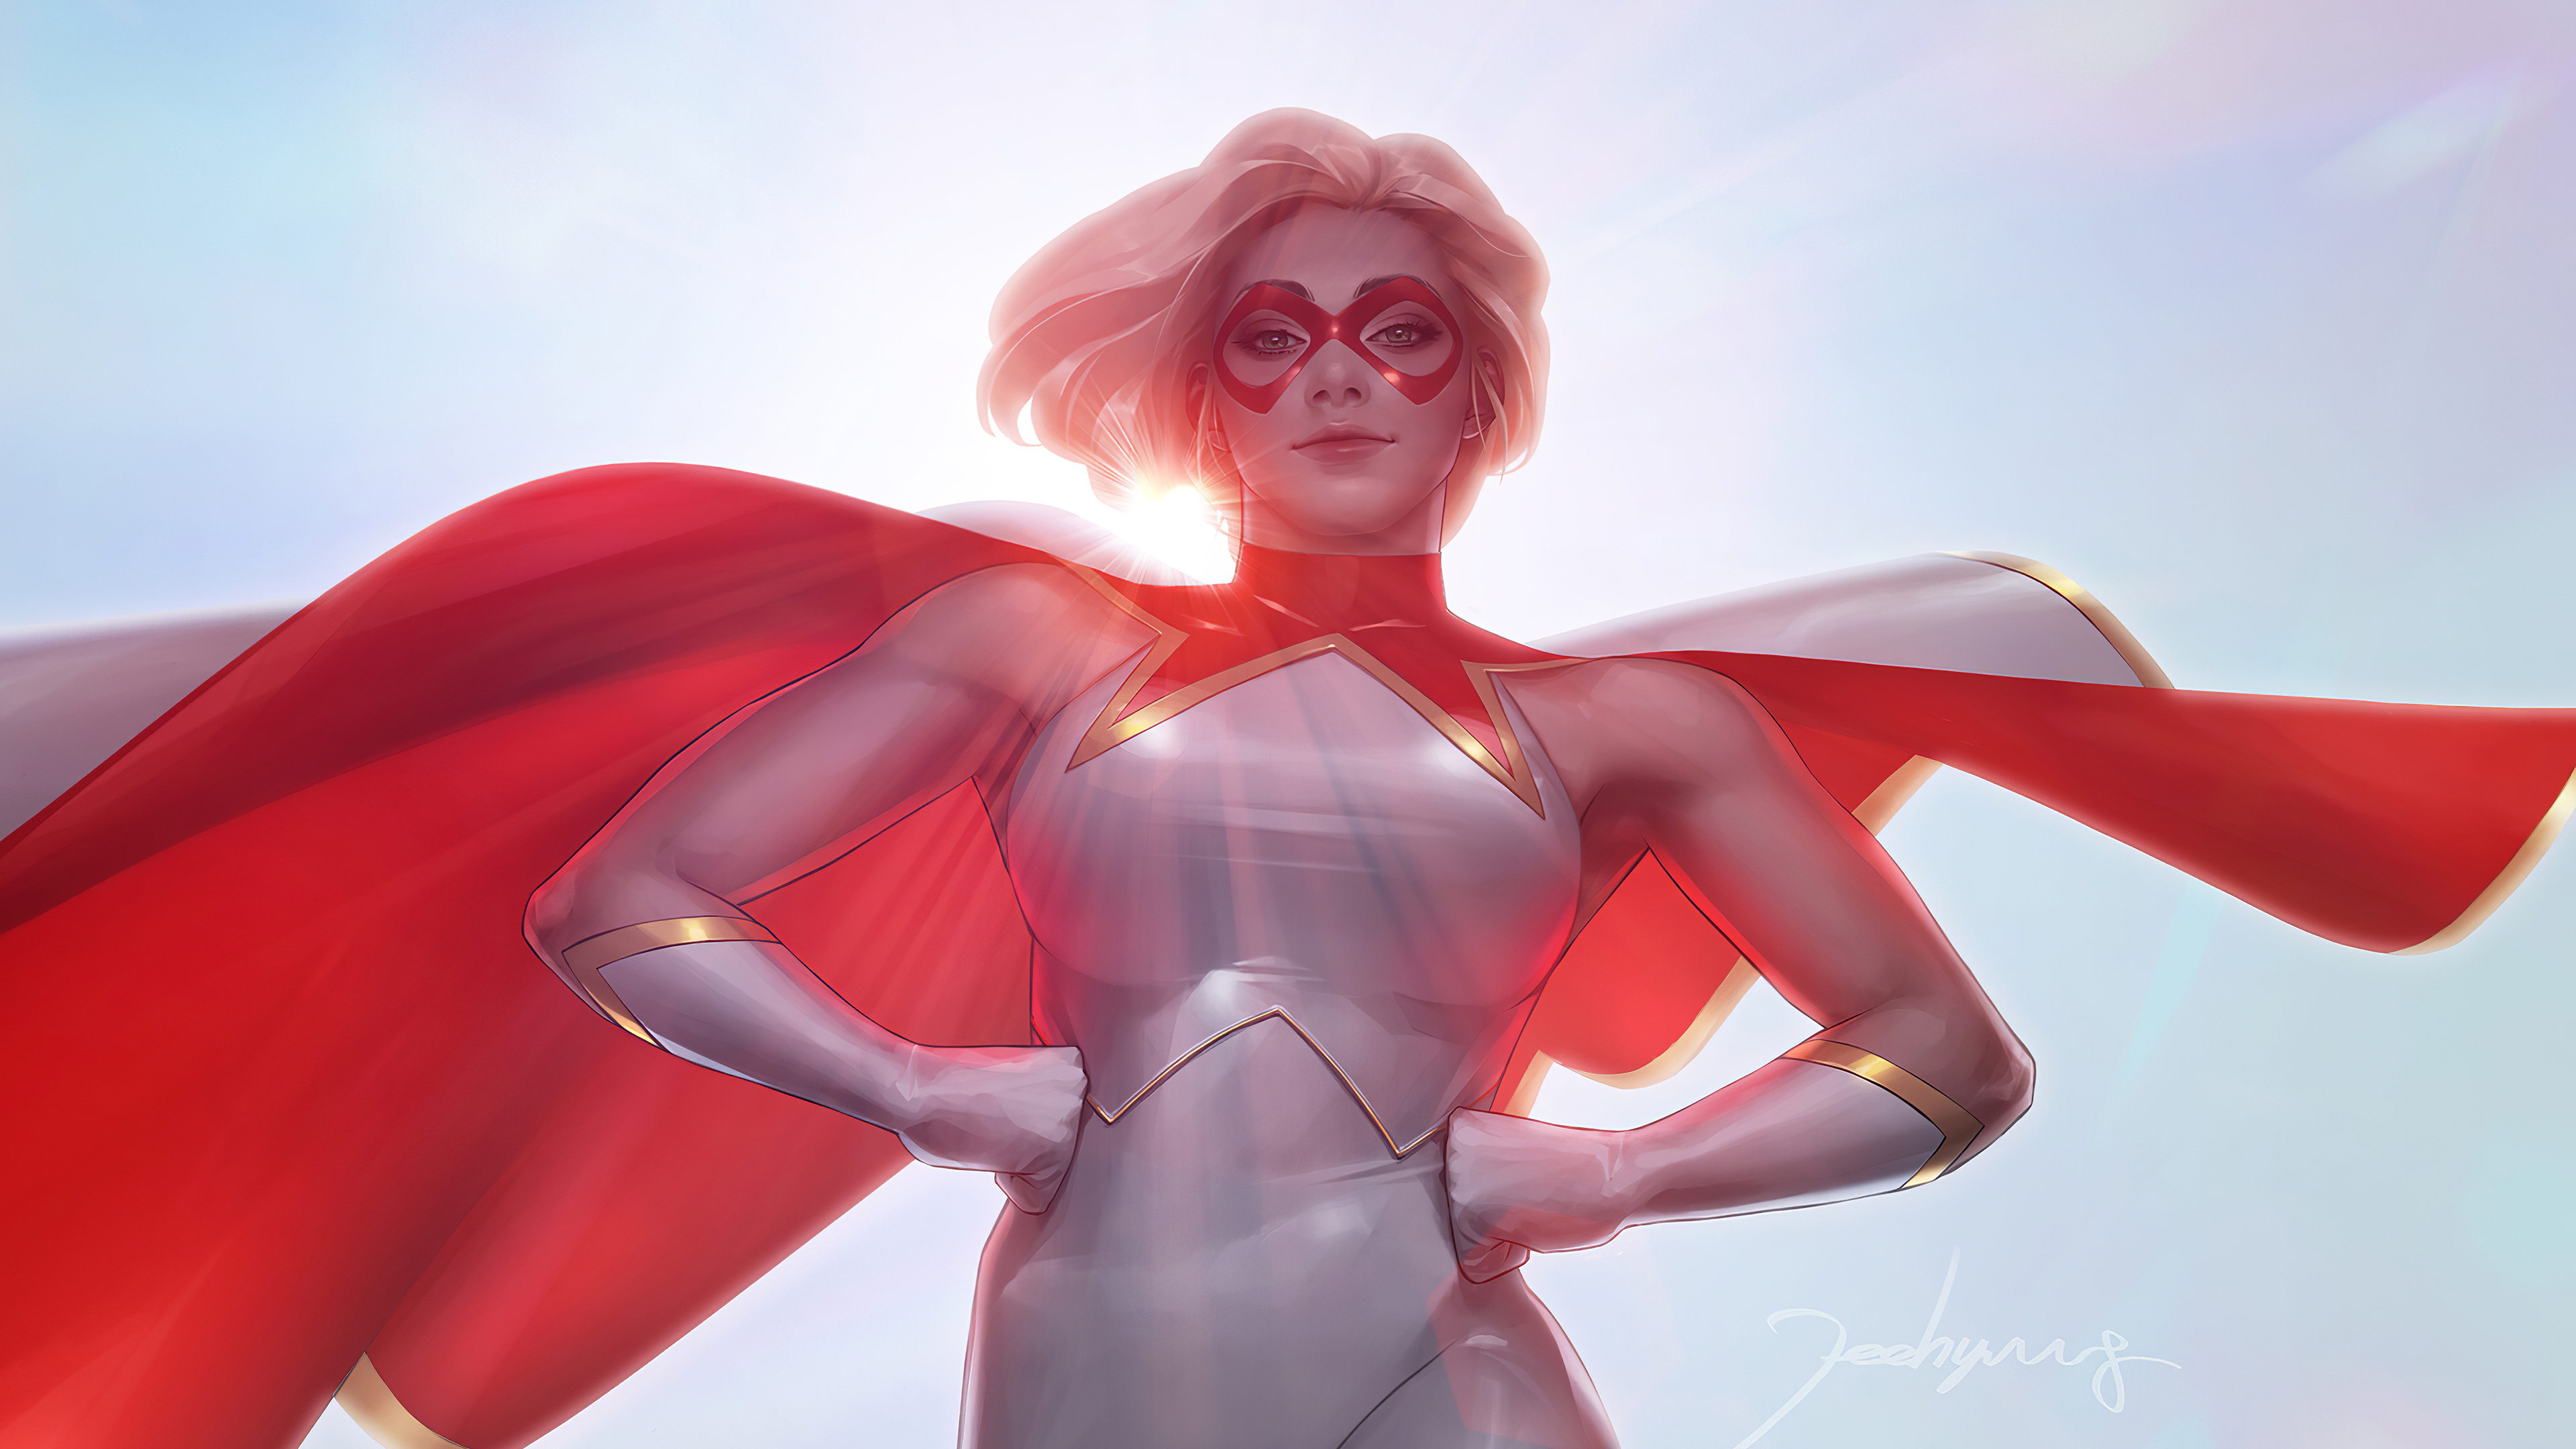 star girl 1572368870 - Star Girl - superheroes wallpapers, star girl wallpapers, marvel wallpapers, hd-wallpapers, artstation wallpapers, 4k-wallpapers